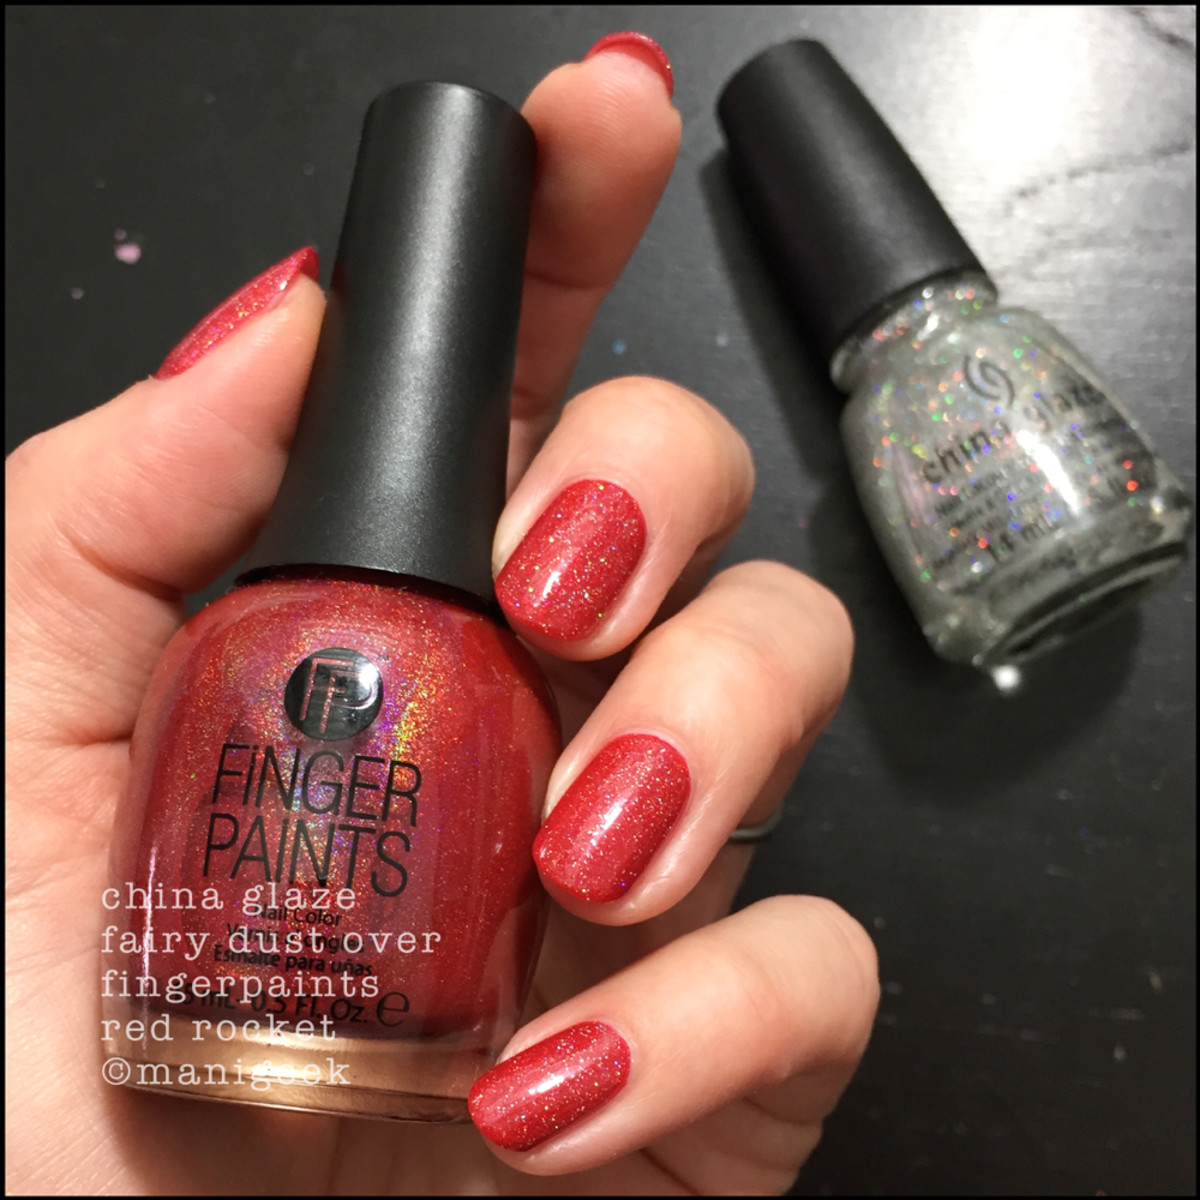 China Glaze Fairy Dust over FingerPaints Red Rocket Summer 2018